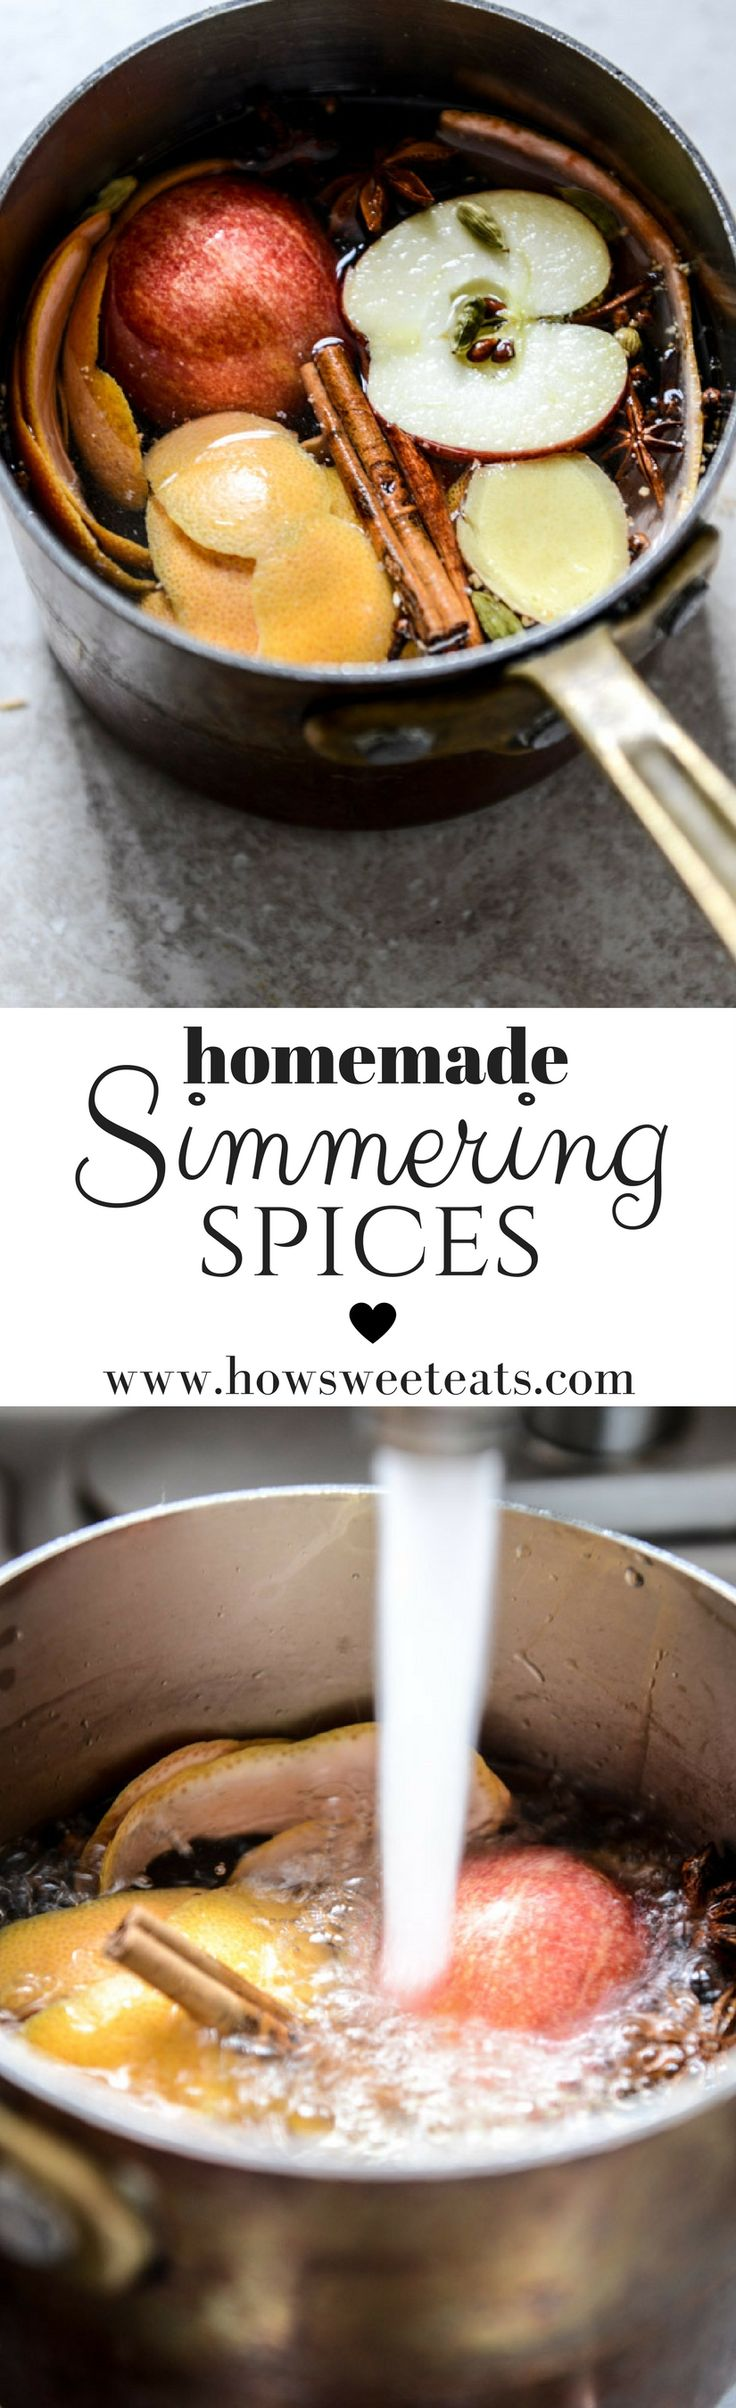 How to make your house smell amazing! Throw these homemade simmering spices on the stove. I howsweeteats.com @howsweeteats